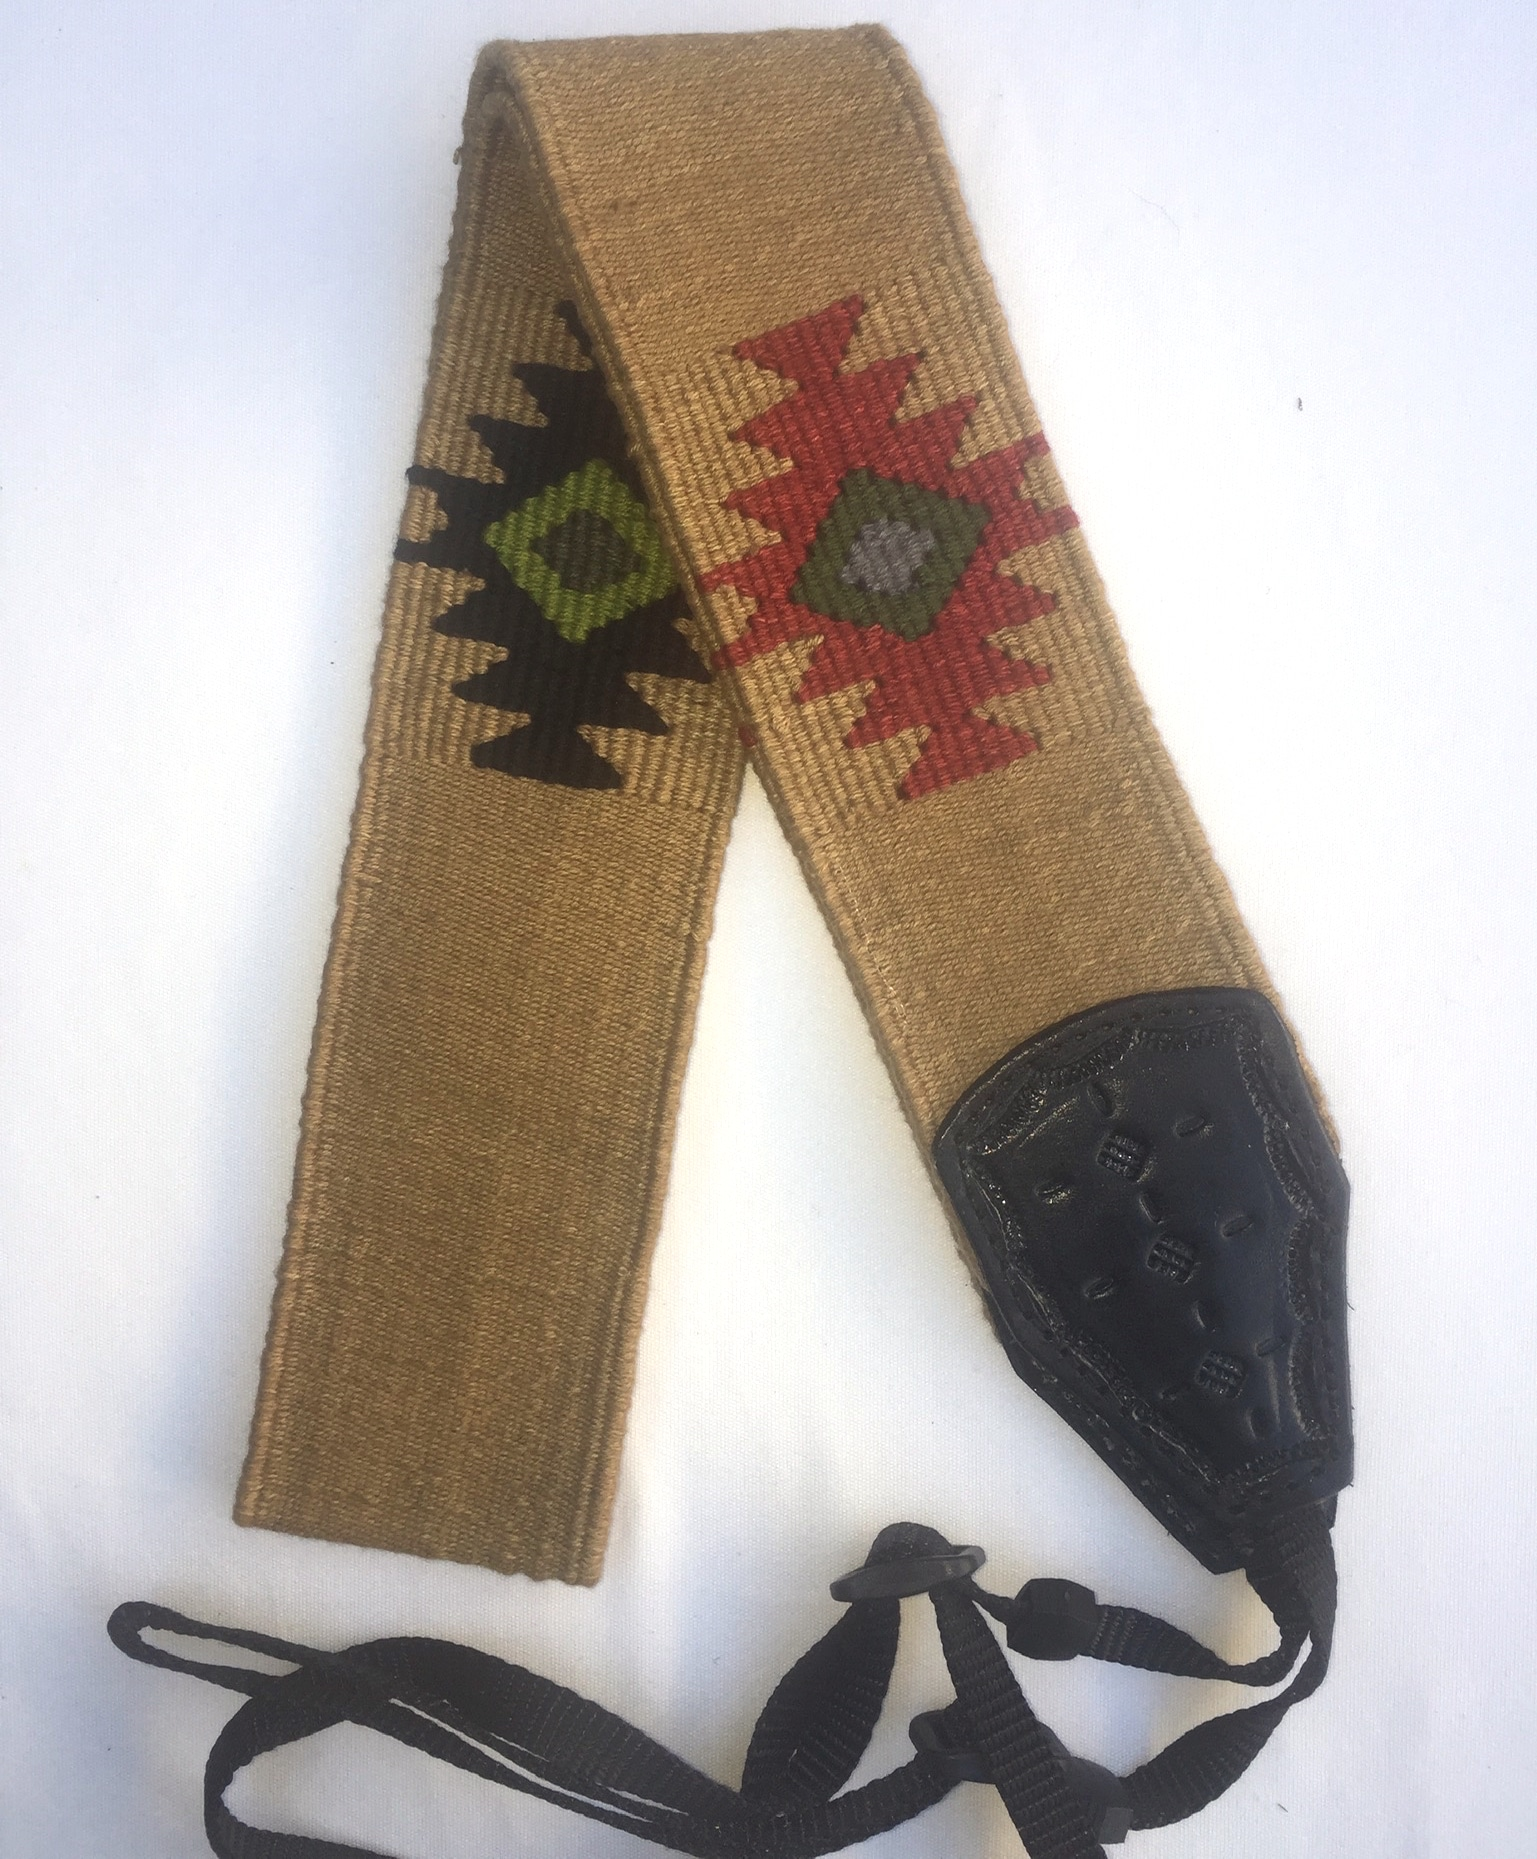 Handwoven Cotton and Leather Camera Strap - Tan with Geometric Diamonds